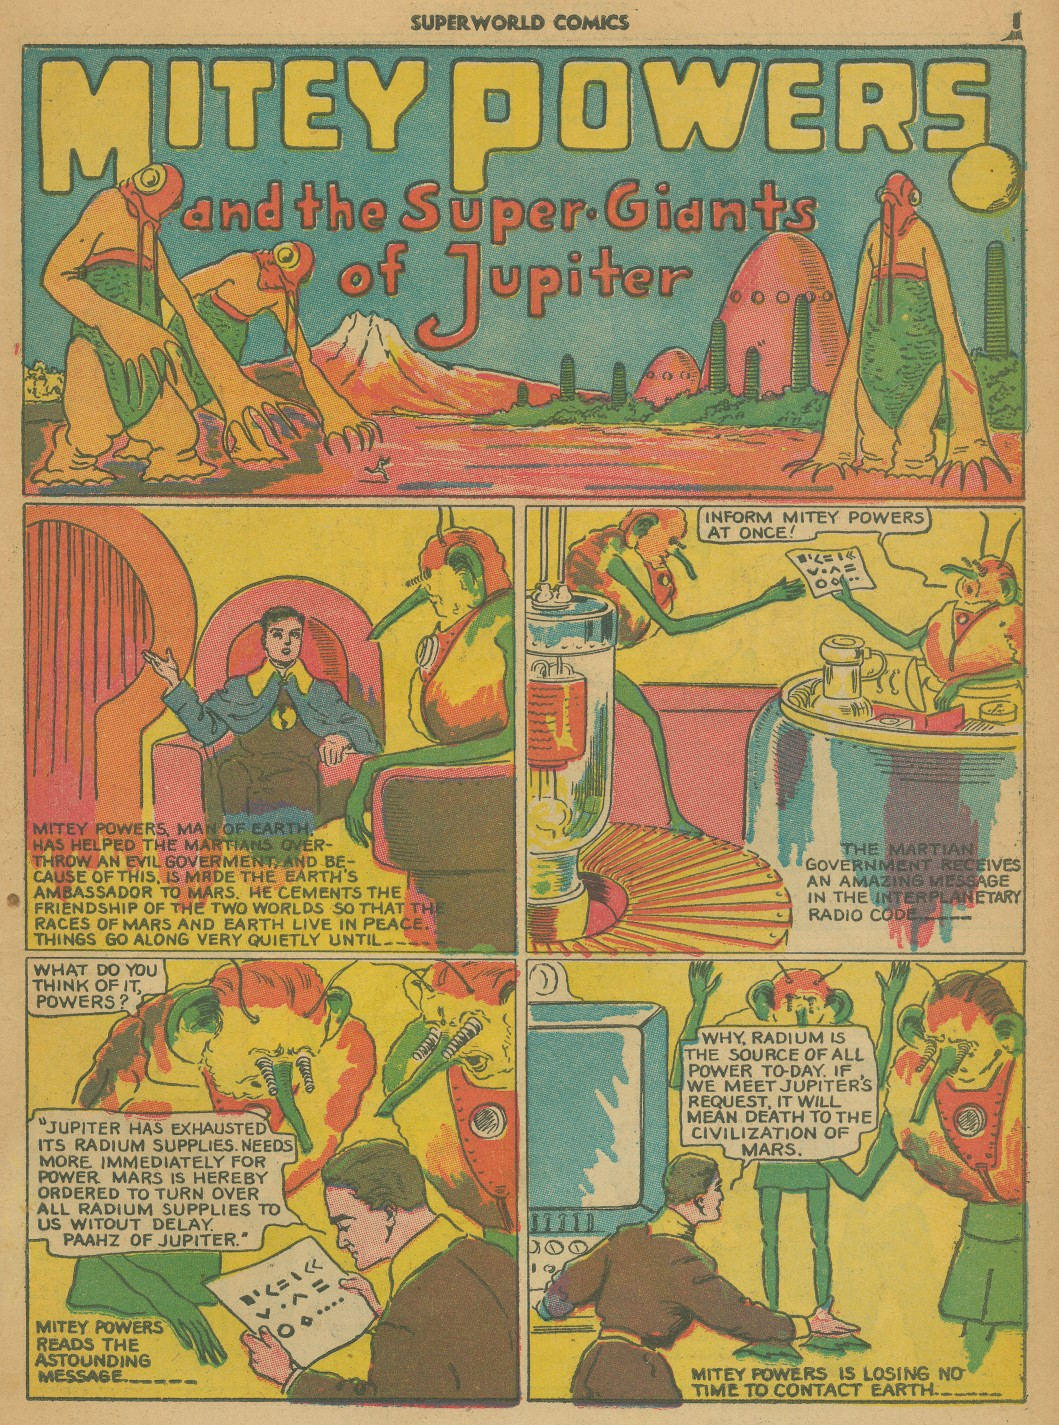 four color shadows mitey powers superworld comics 1940